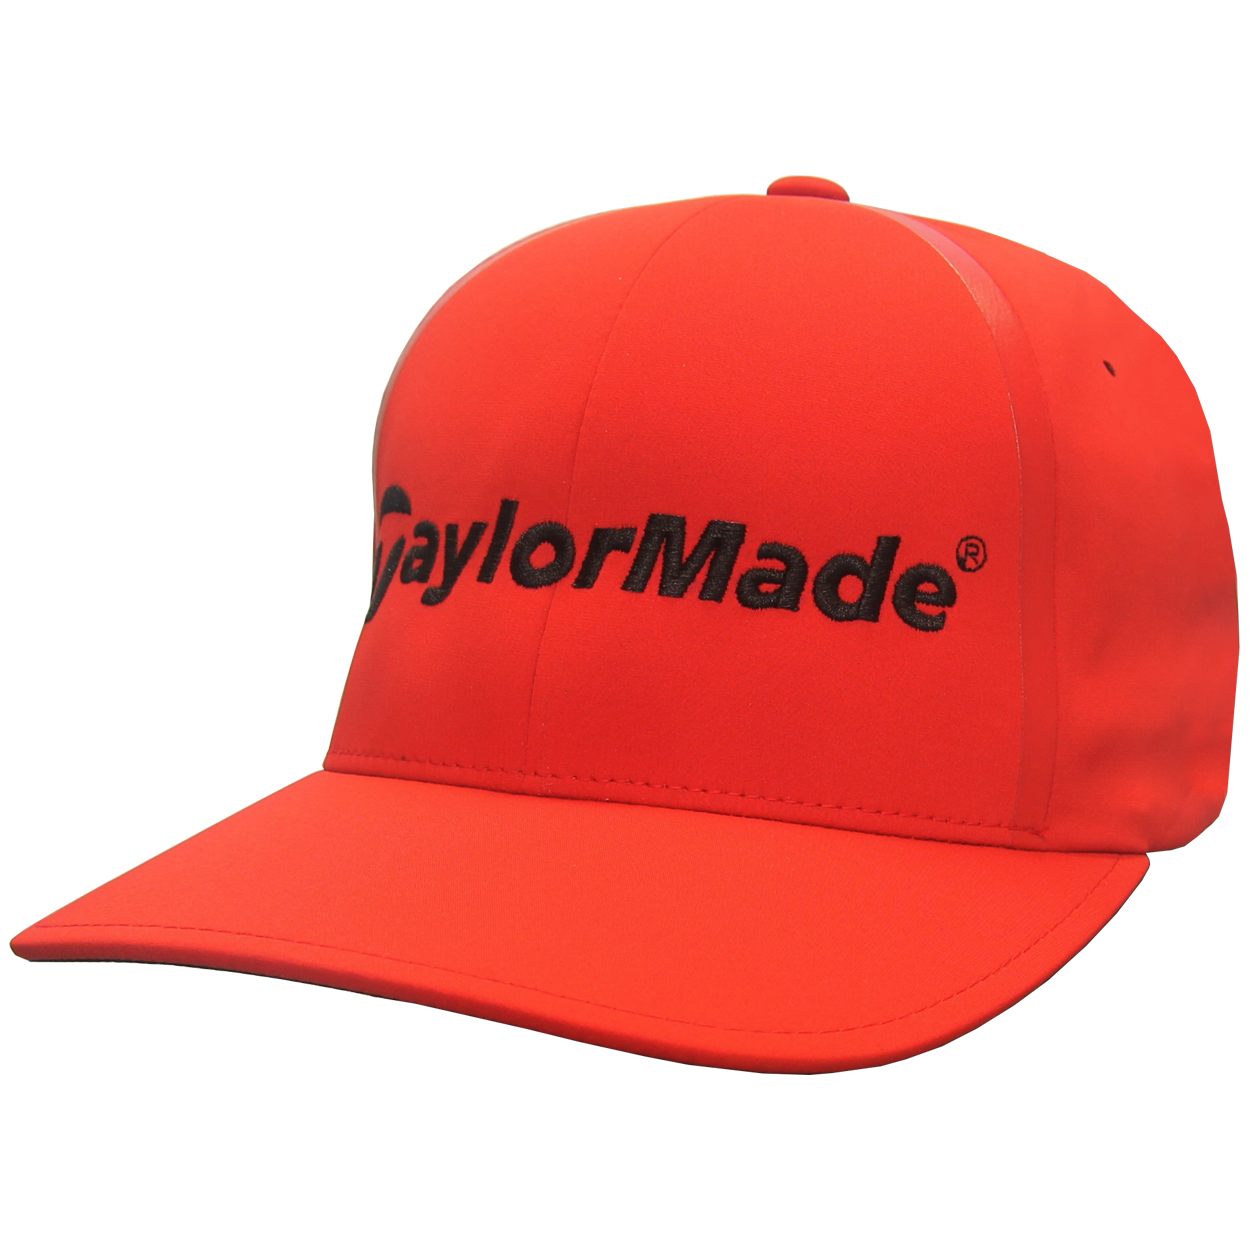 6c94f42e8db25 TaylorMade Adidas Flexfit Delta Fitted Hat - GolfEtail.com